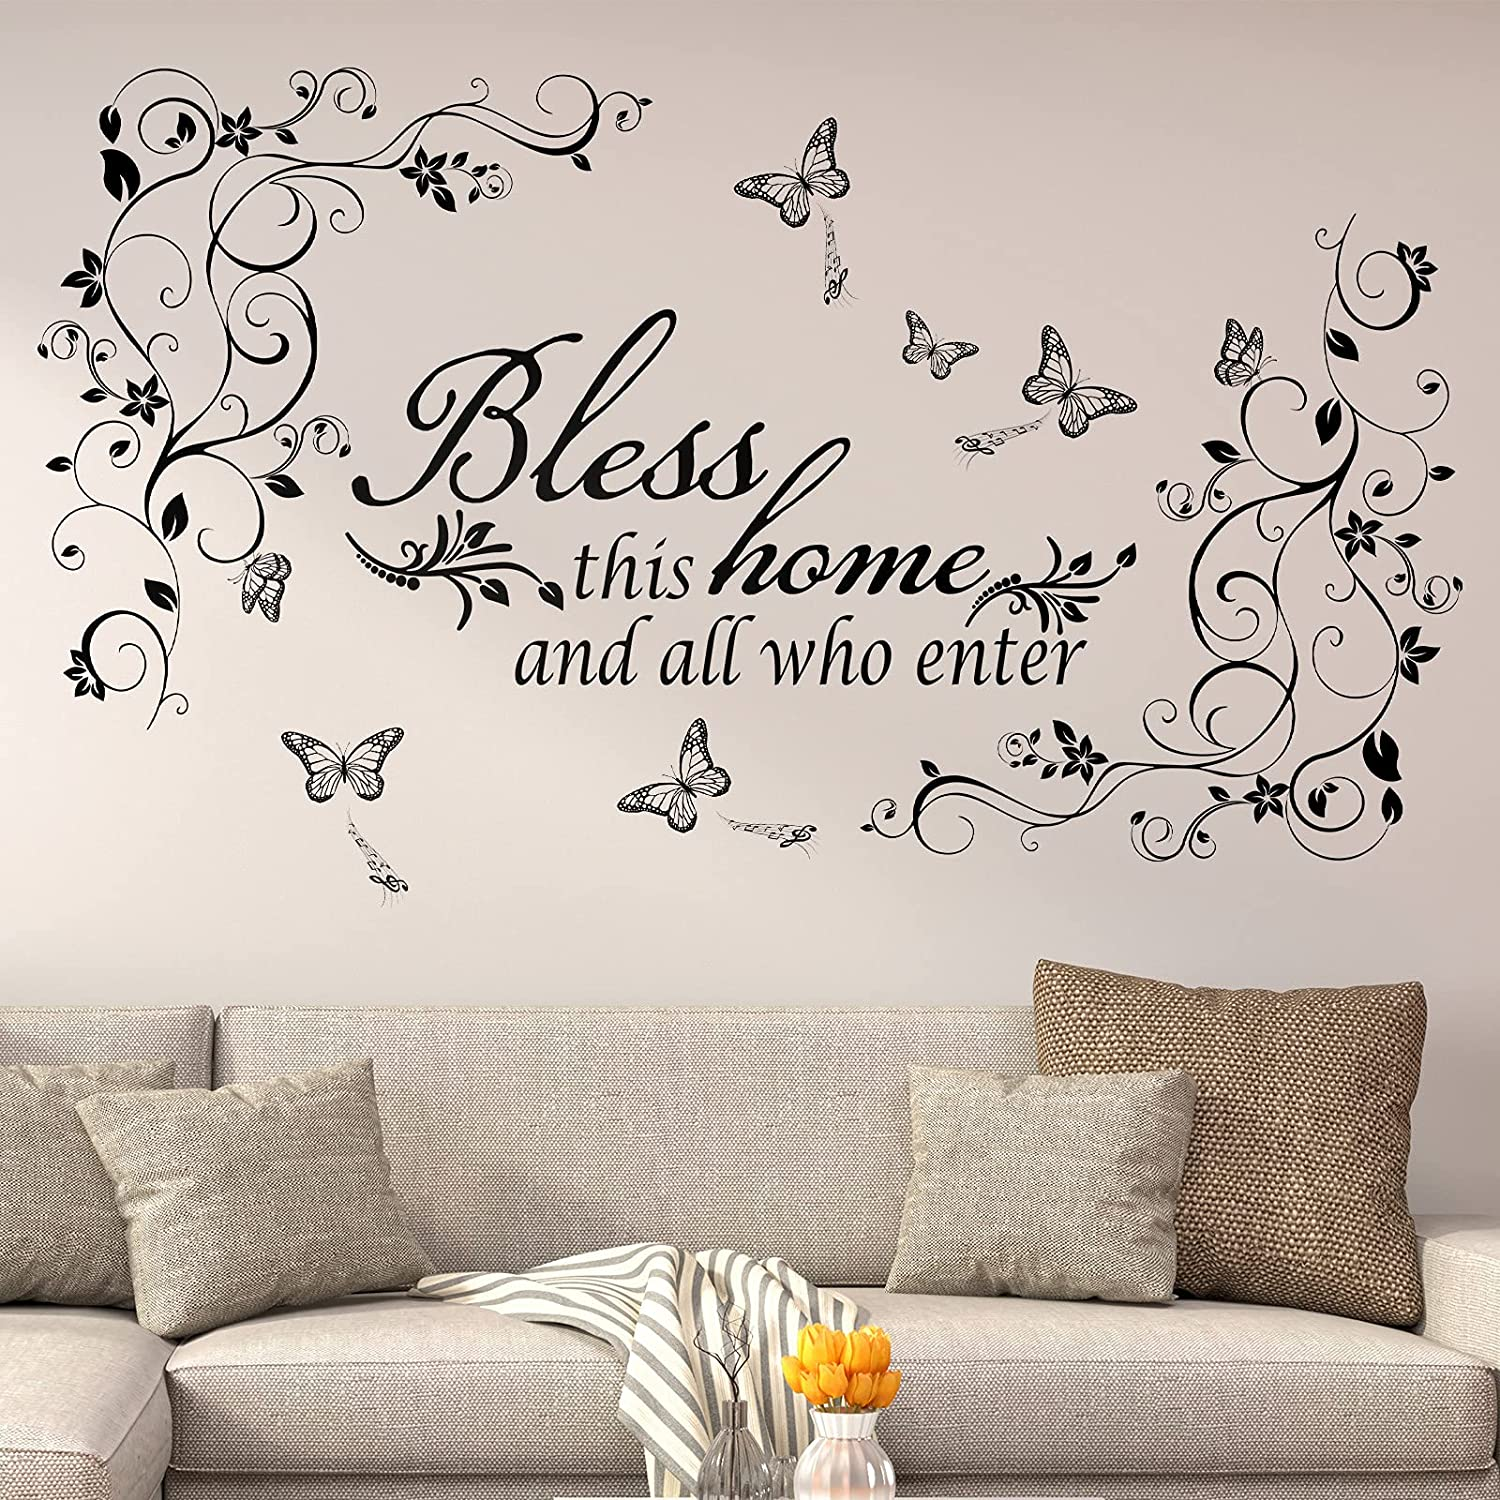 Vinyl Wall Quotes Bless This Home and All who Enter Wall Decals Removable Vinyl DIY Black Flowers Vine Wall Stickers Beautiful Butterfly Wall Sticker Murals Peel and Stick Art for Home Living Room